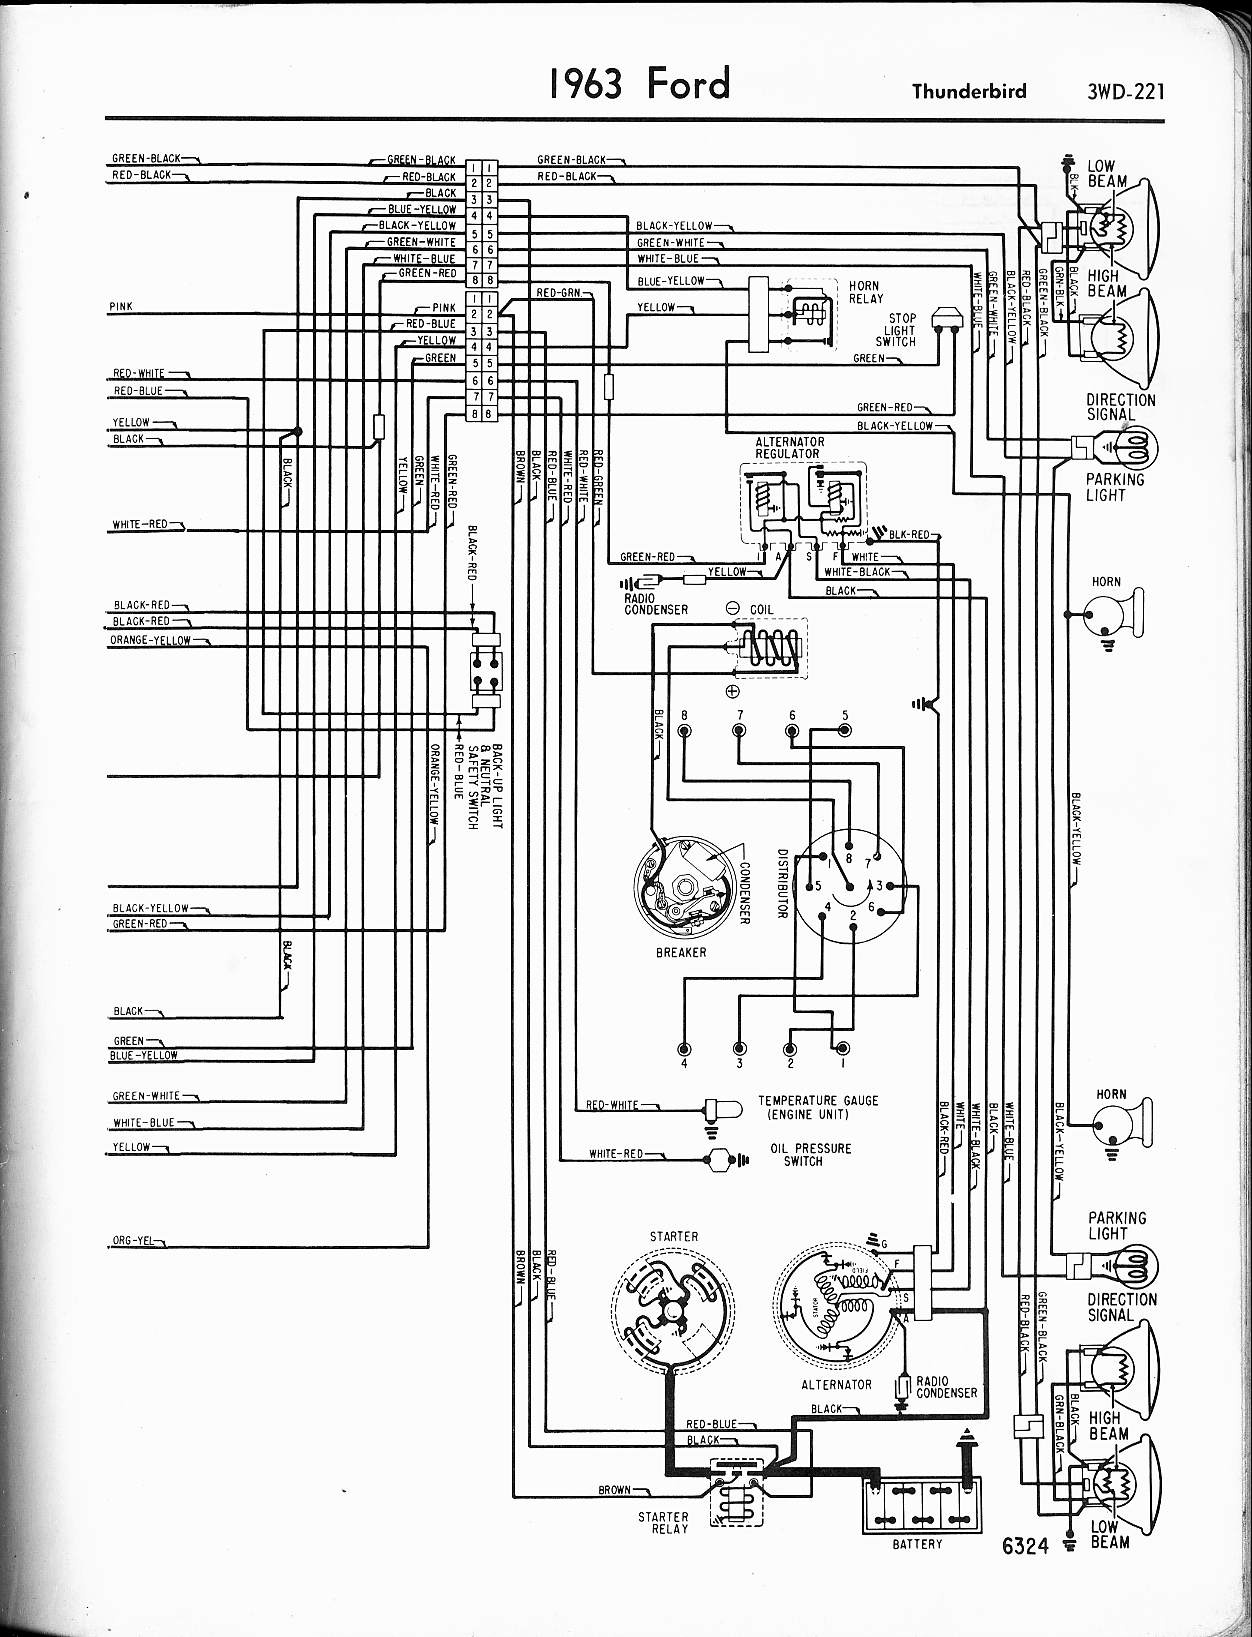 33 Ford Wiring Diagram. Ford Schematics, Ford Regulator